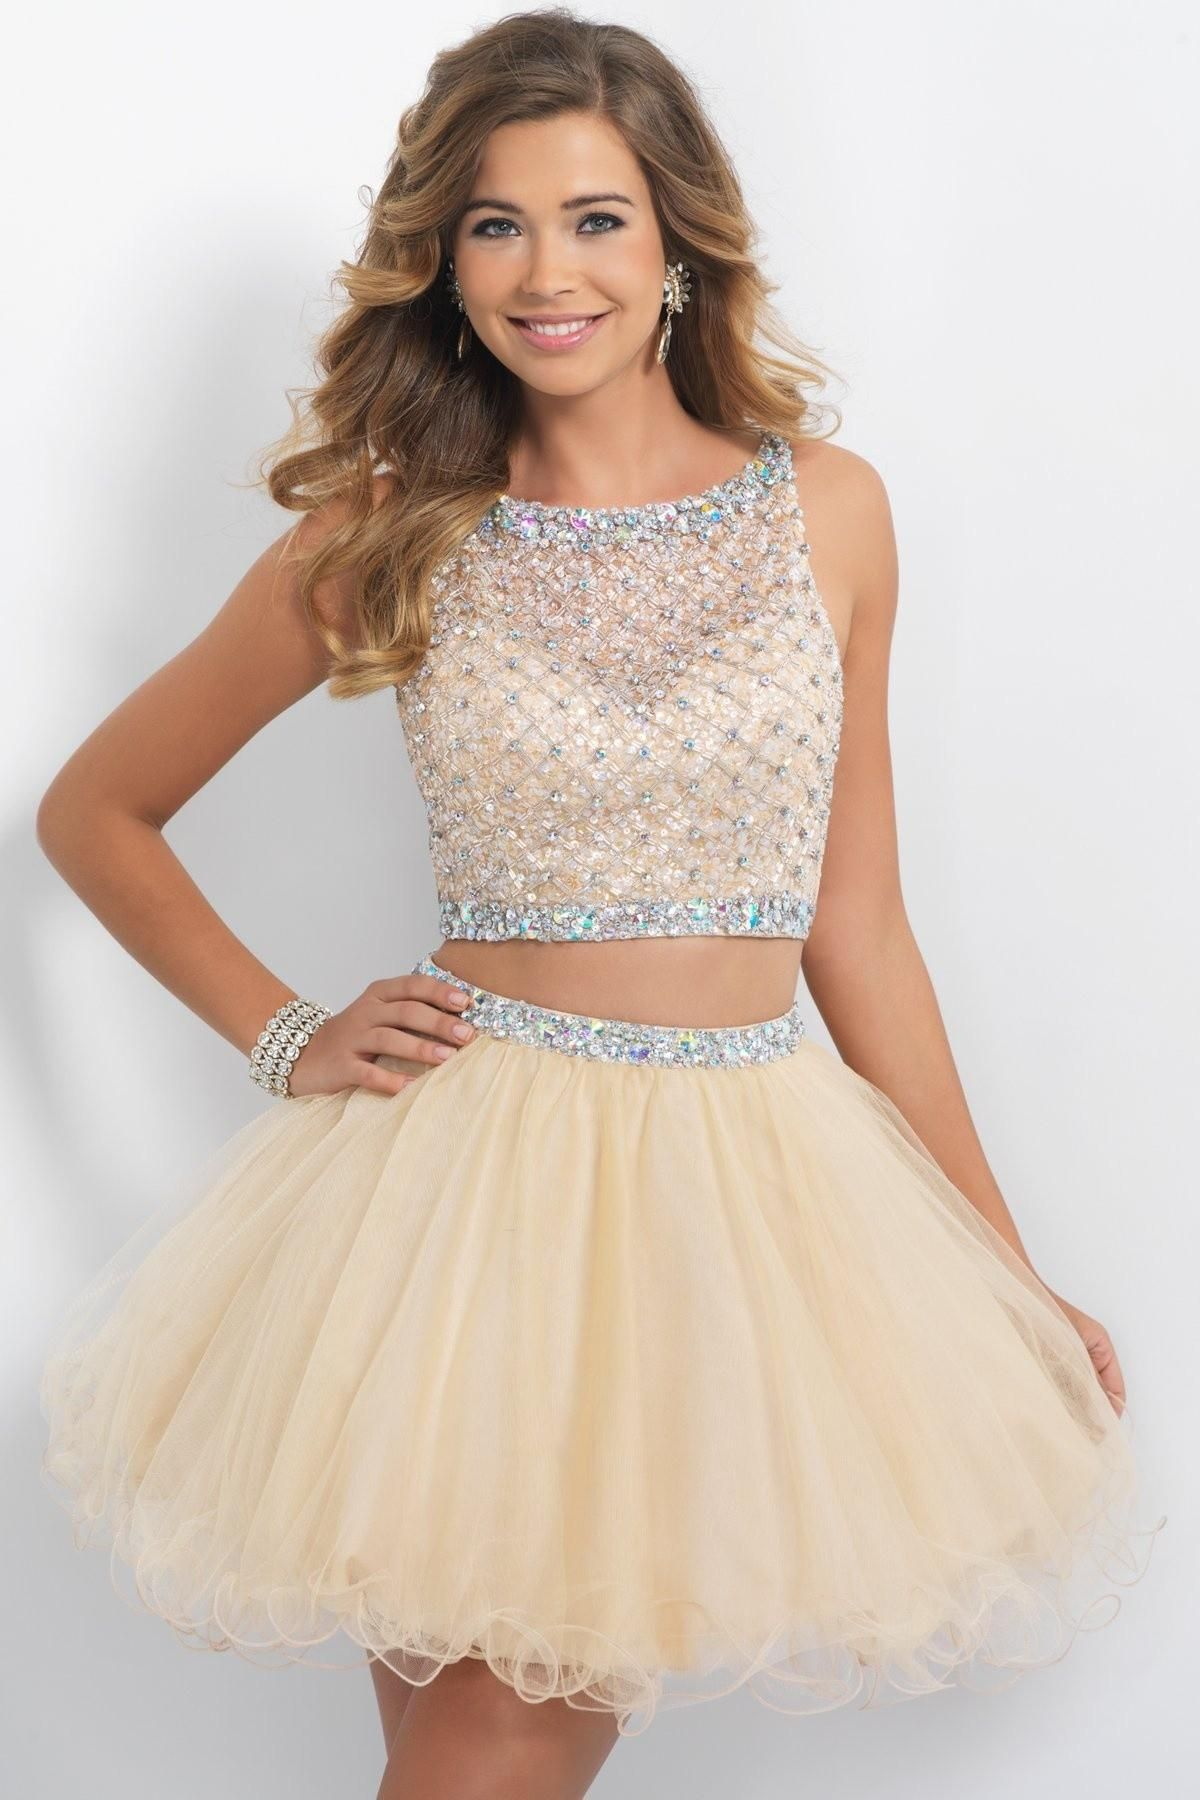 f014b86a469 Ivory Two Pieces Homecoming Dresses 2015 Cheap Beaded Backless Tulle Lace  High Neck Under  100 8th Graduation Dresses Short Party Prom Dress  Homecoming ...